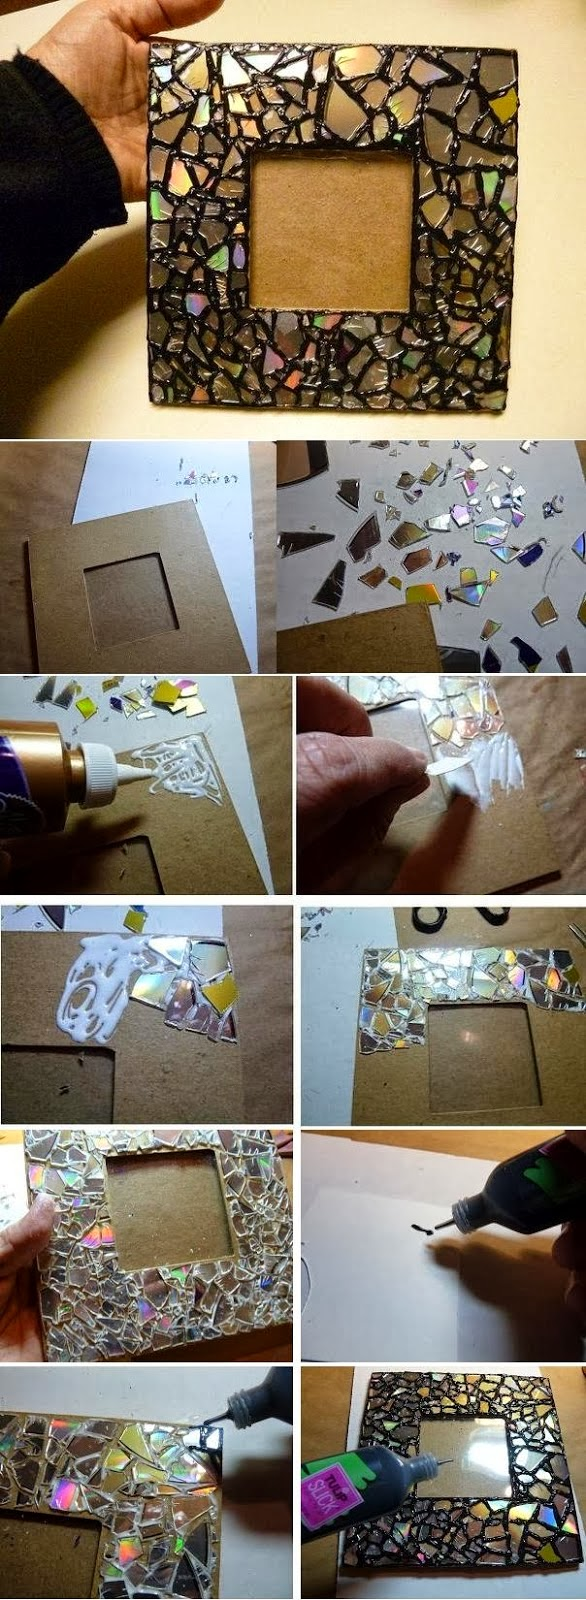 Pro Diy Tips Make Mosaic Mirror Frame By Old Cd